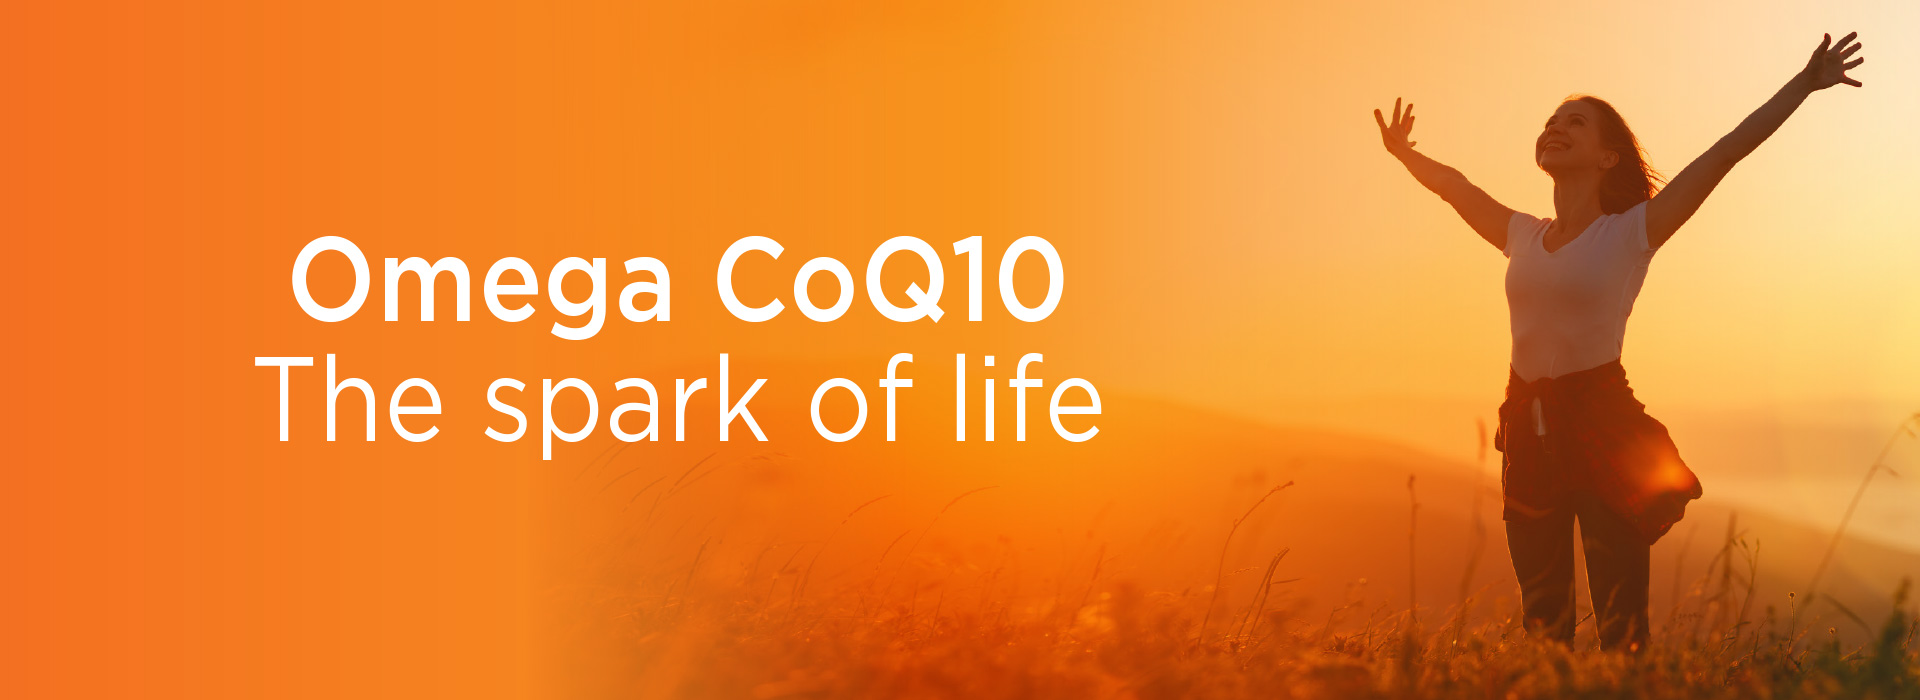 New Image International: Omega CoQ10 The spark of life